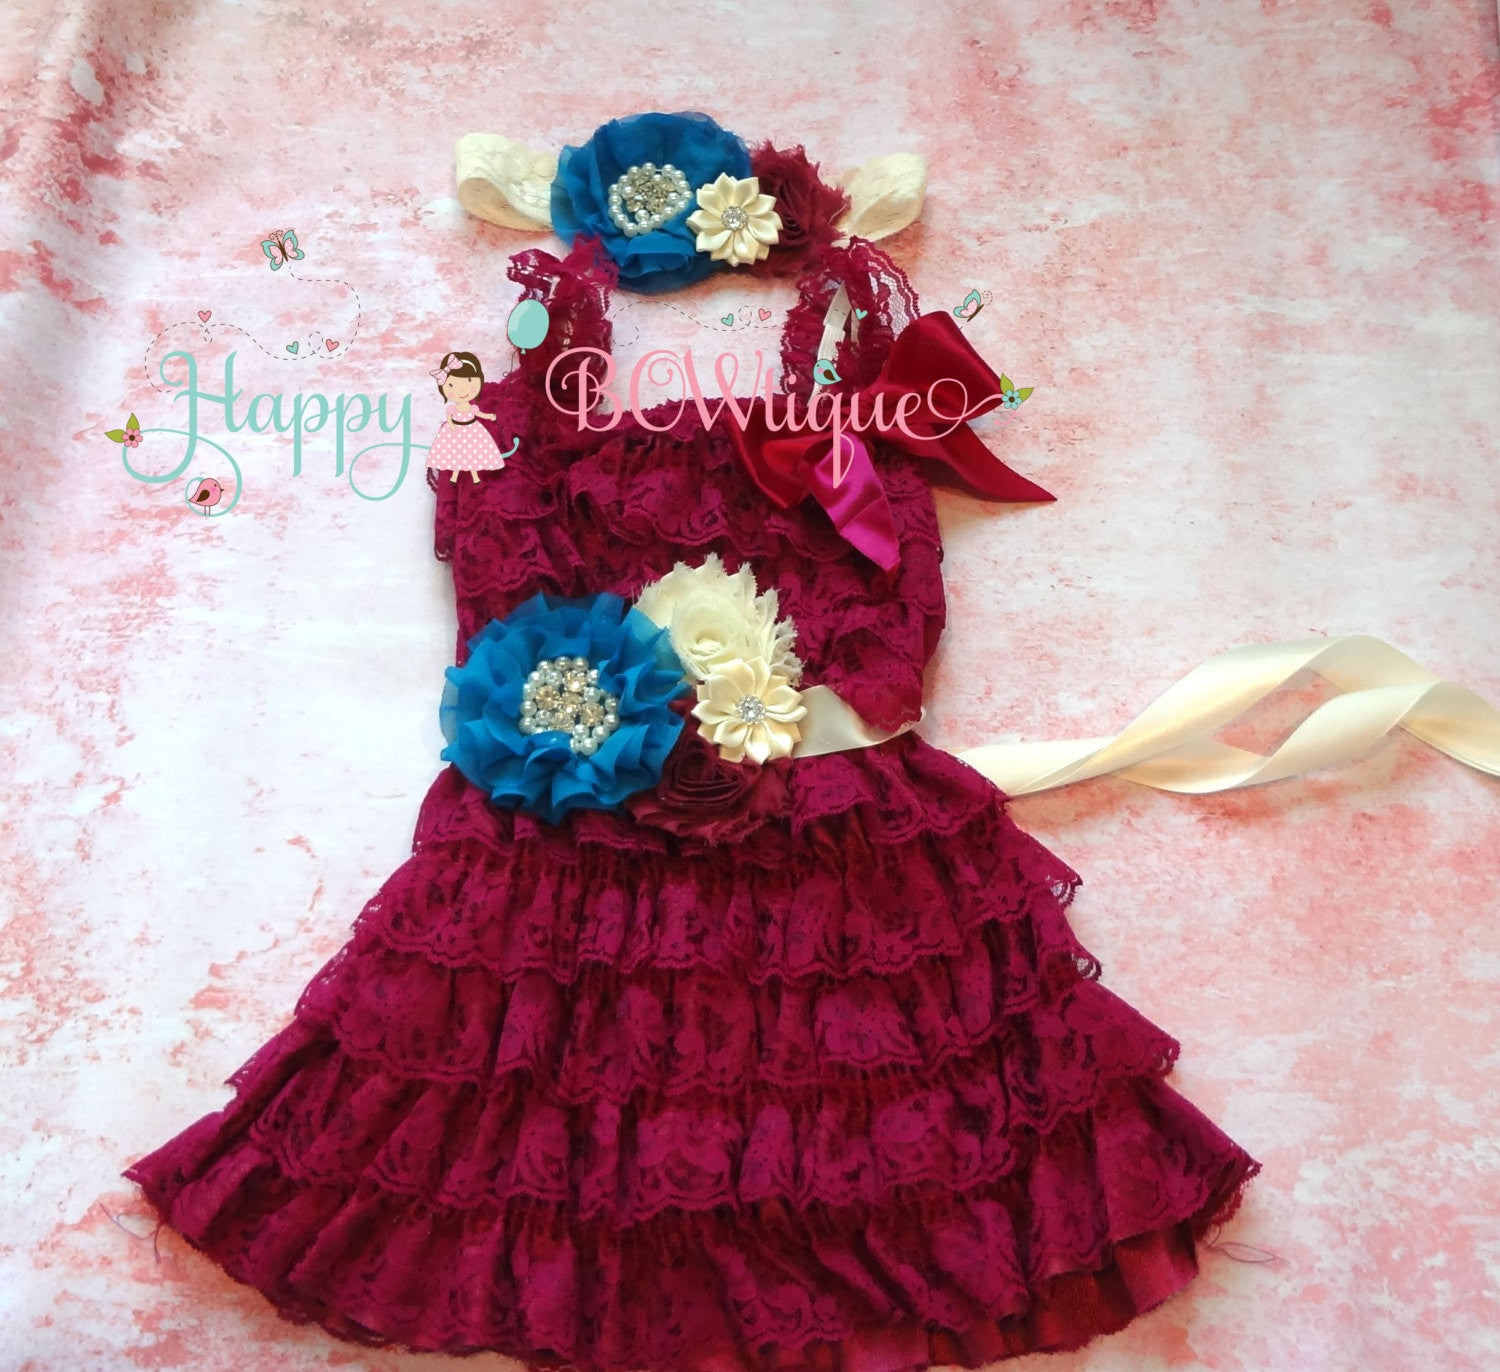 Raspberry Ivory Turquoise dress set / Girl Lace Dress Set - Happy BOWtique - children's clothing, Baby Girl clothing